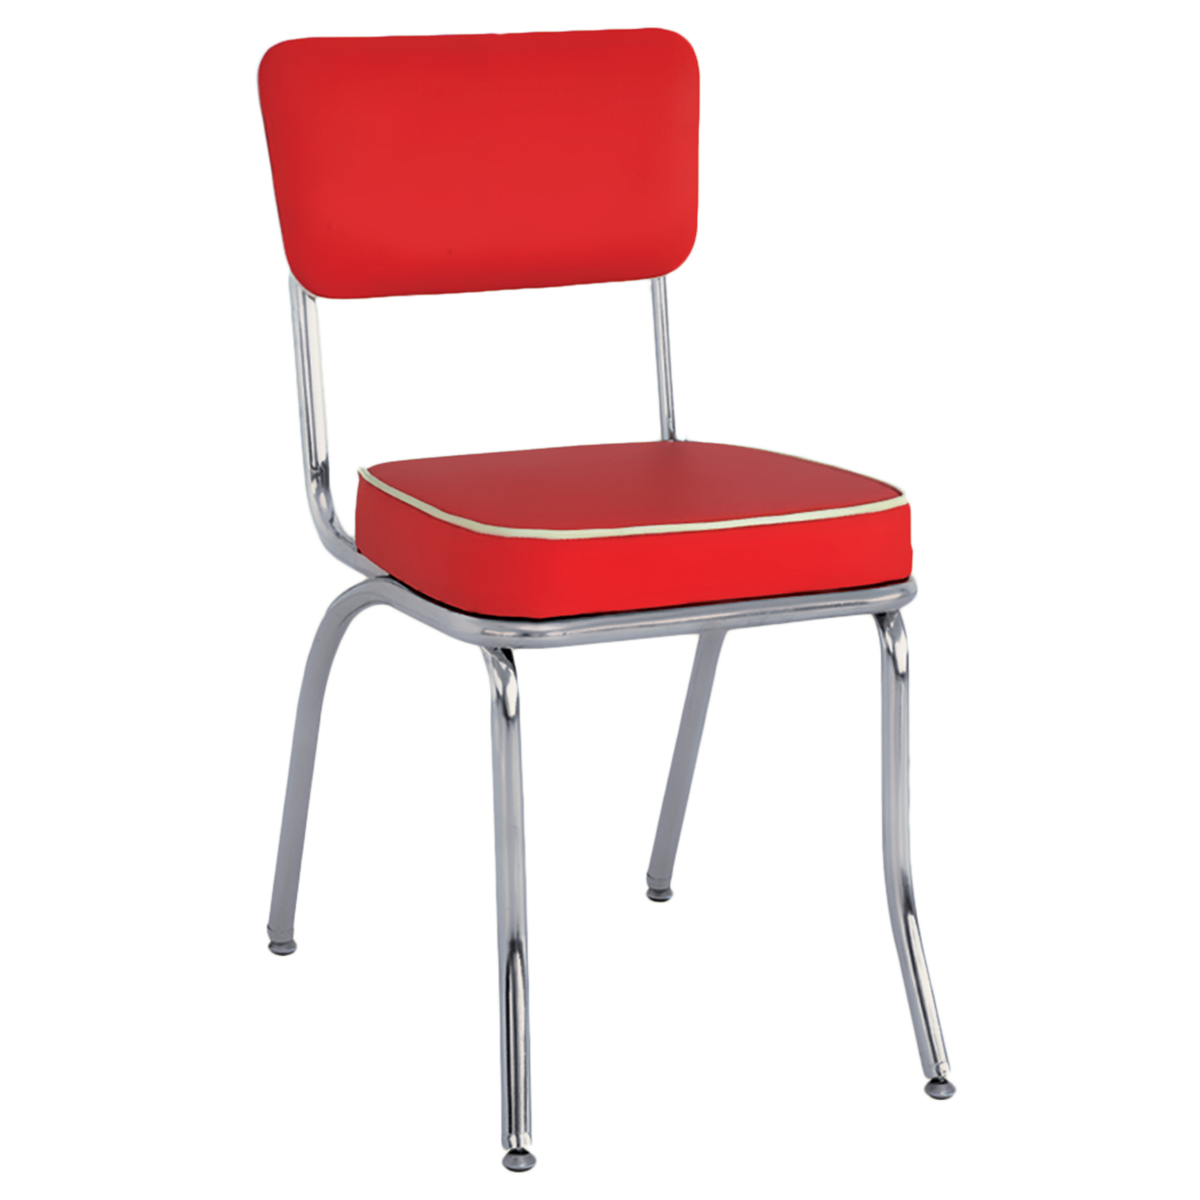 JustChair Manufacturing